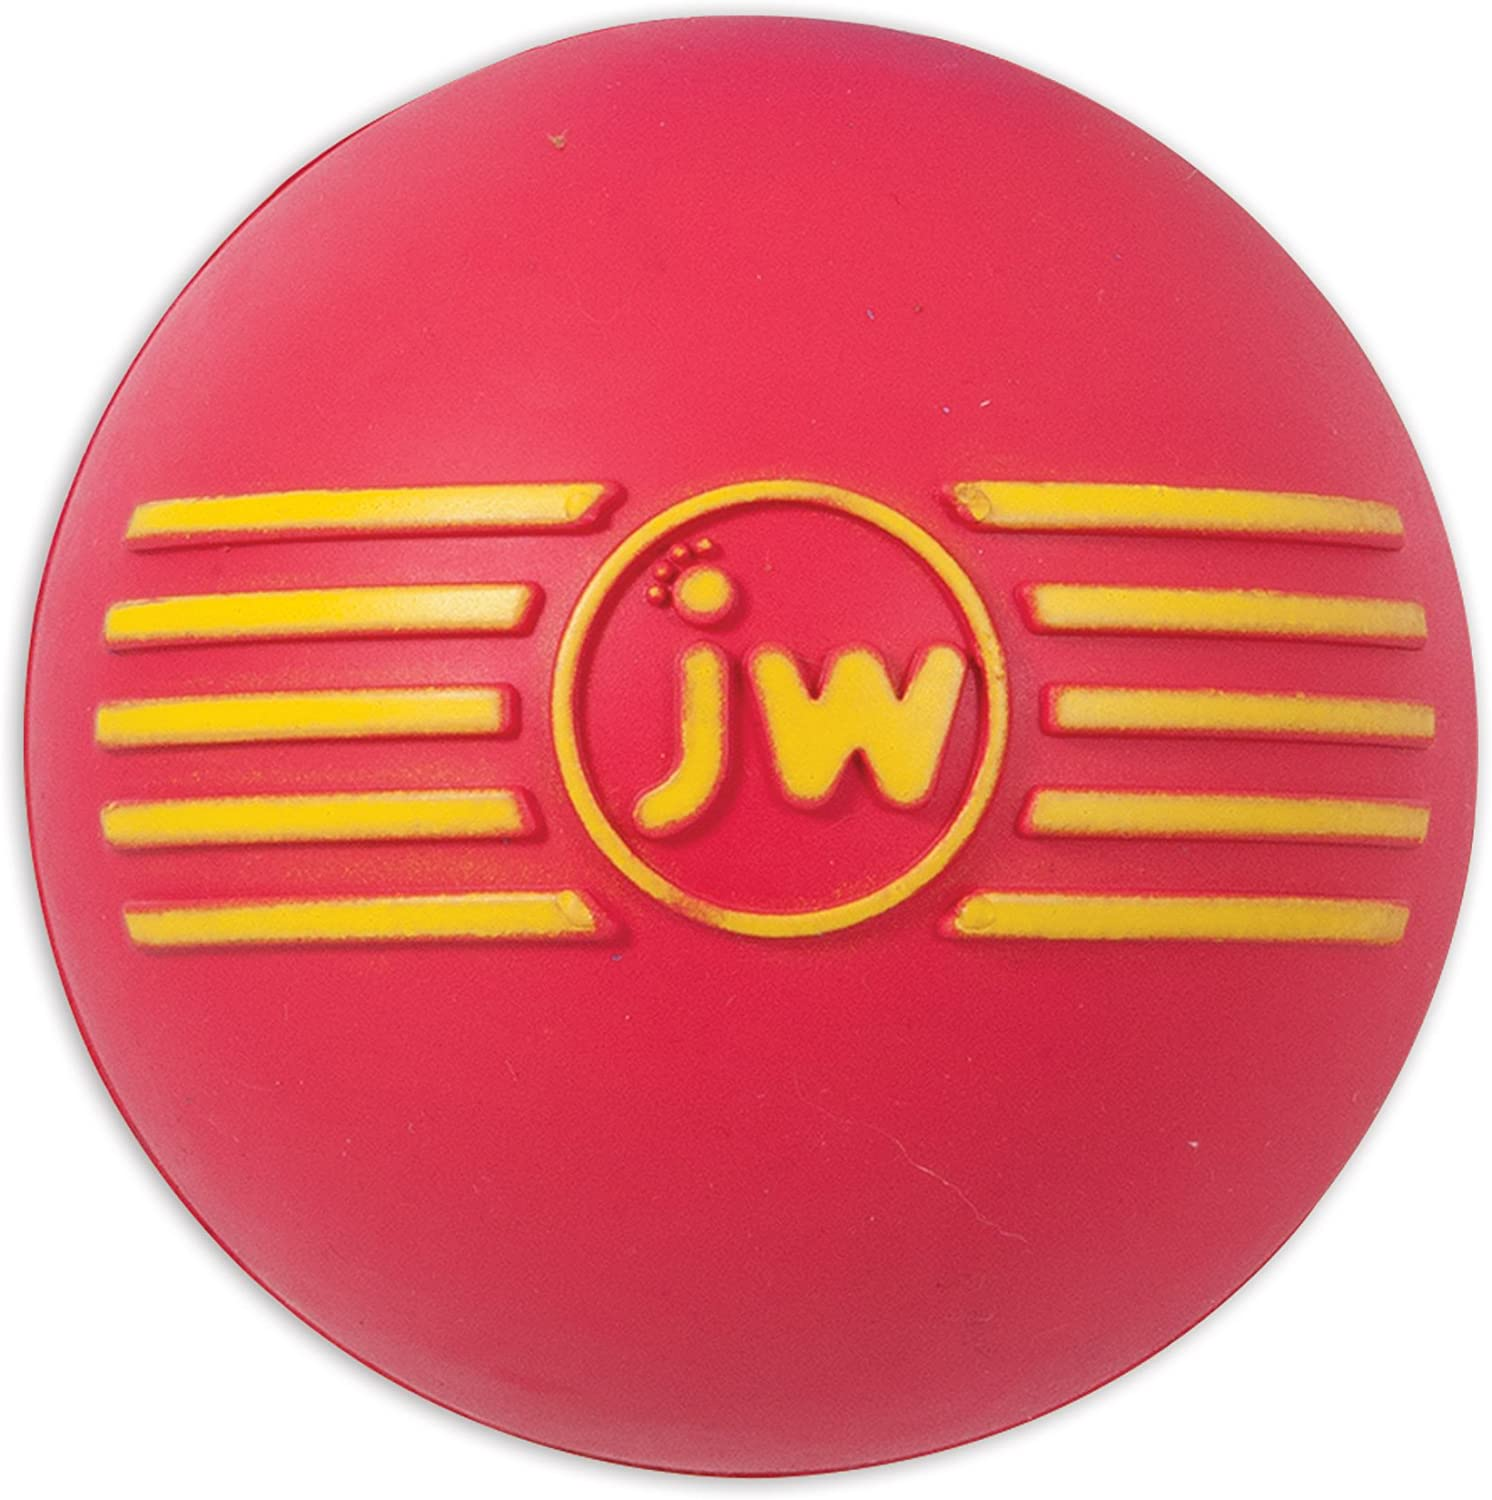 JW Isqueak Ball Medium By Squealing Thick Rubber Ball For Dogs, M